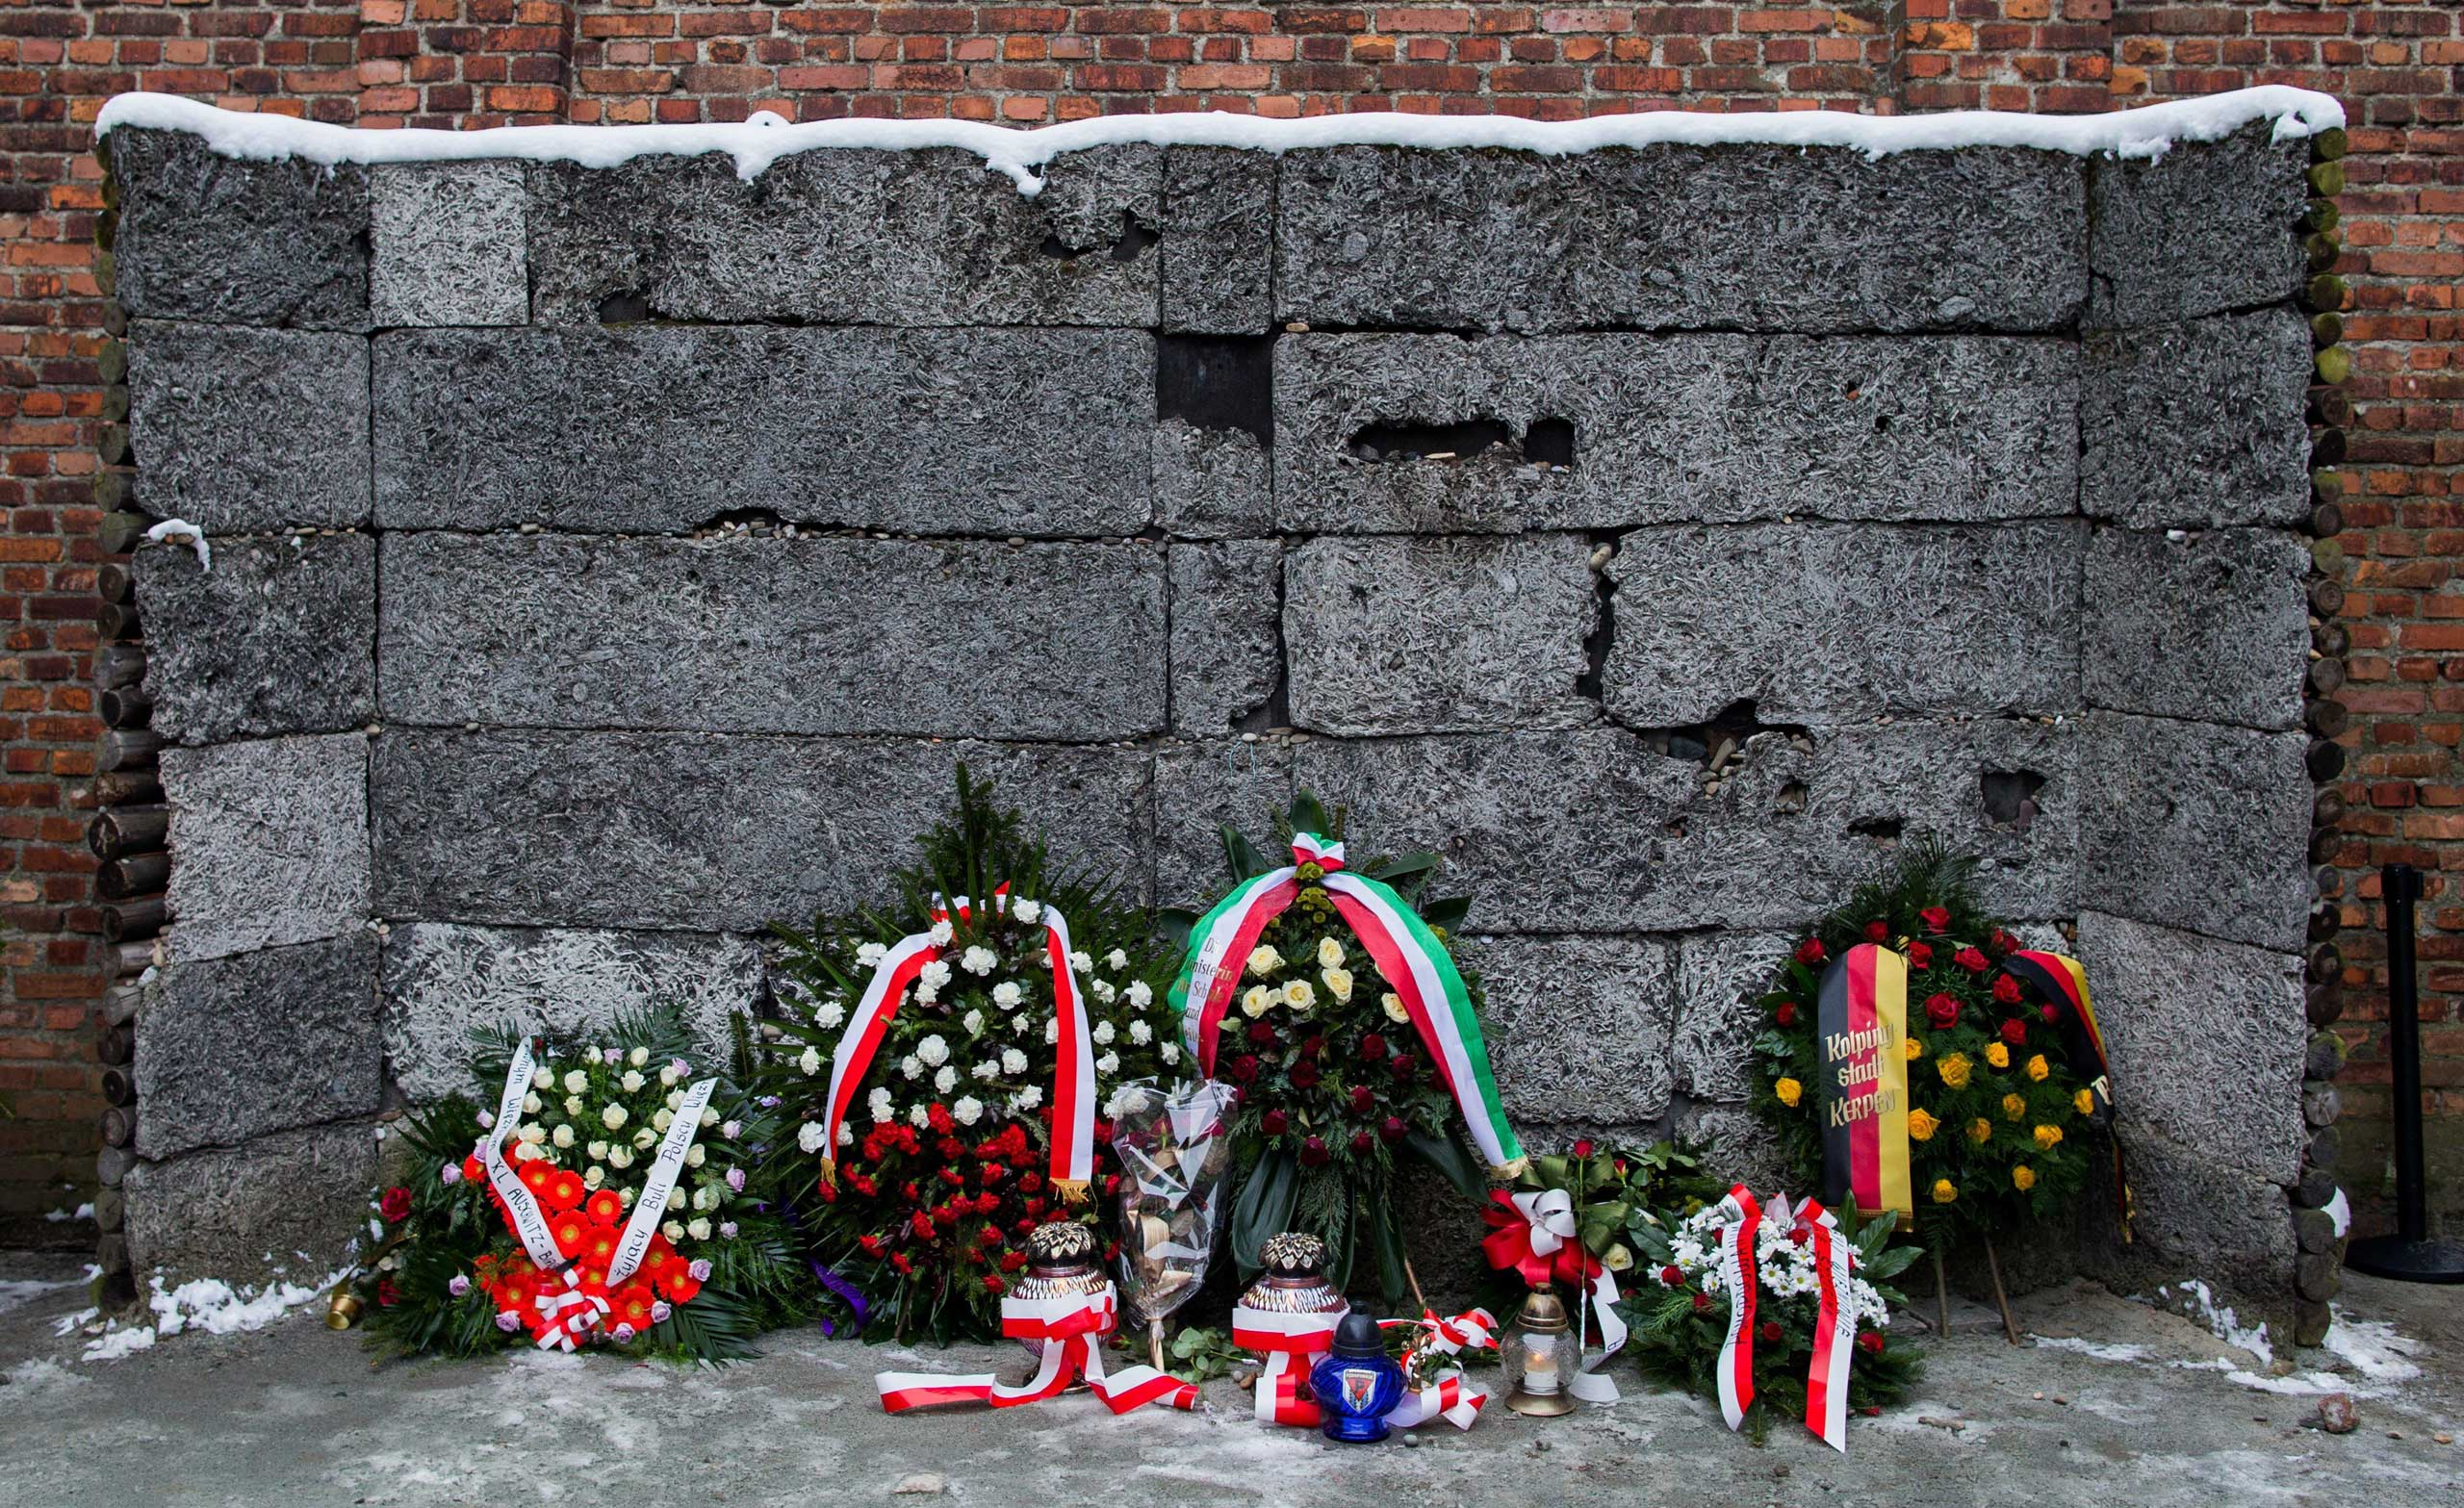 The wall of death prior to a ceremony marking the 70th anniversary of the liberation of the former Nazi-German concentration and extermination camp KL Auschwitz-Birkenau in Oswiecim, Jan. 27, 2015.